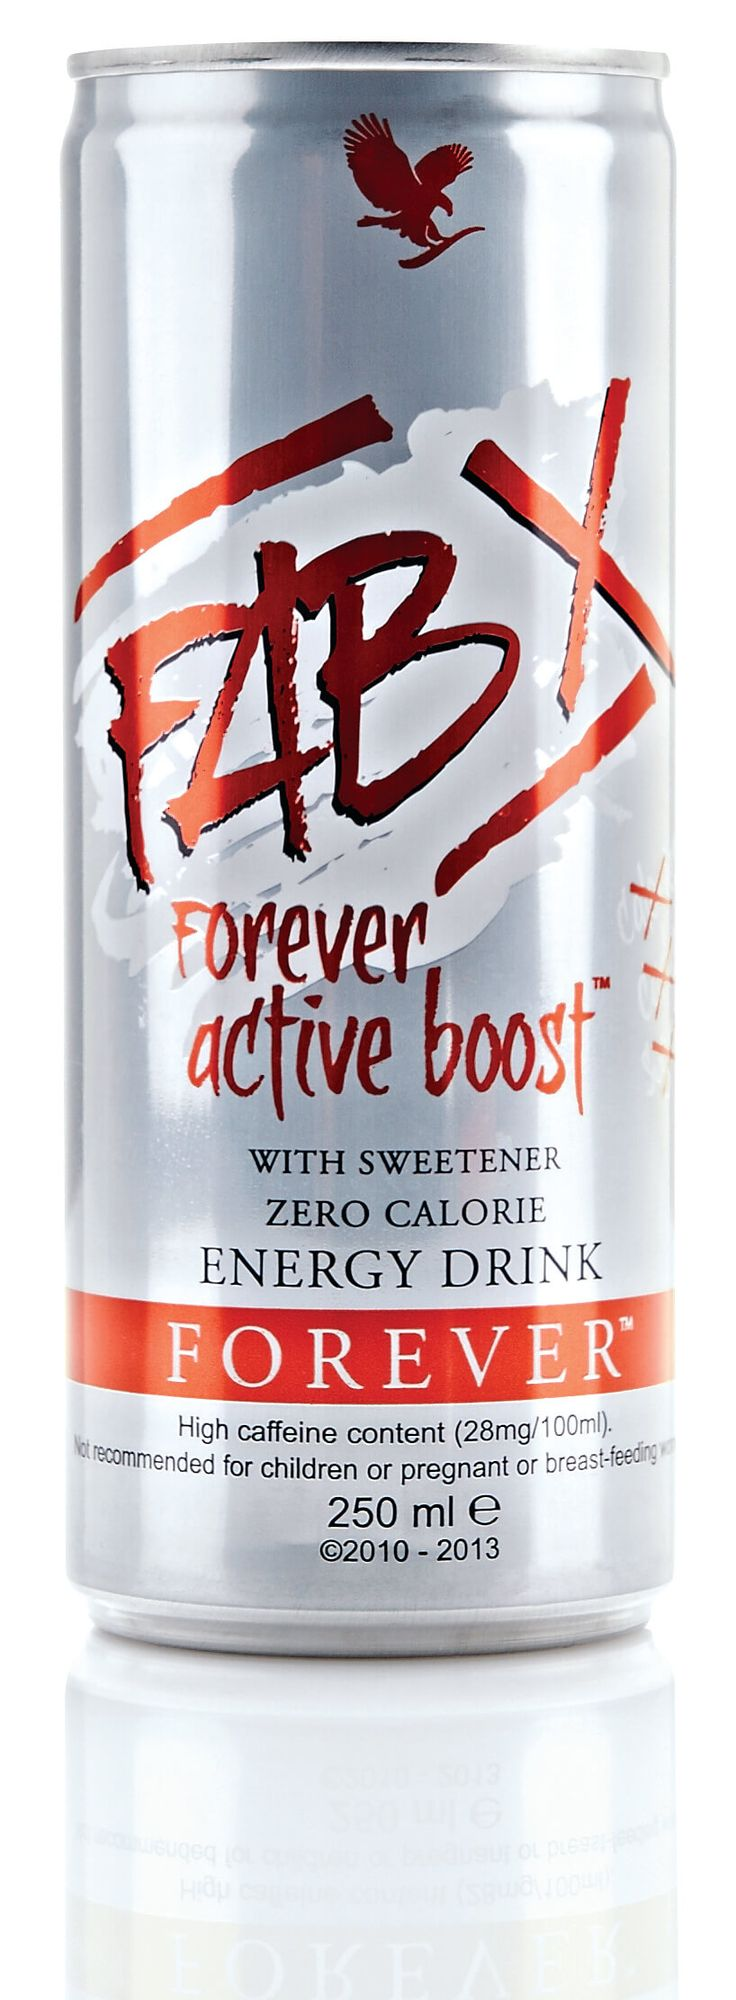 #FAB X Forever Active Boost #EnergyDrink has ZERO calories, sugar OR carbs! Making it the perfect drink for when you want a refreshing pick-me-up. #ForeverLiving http://link.flp.social/yd26C9